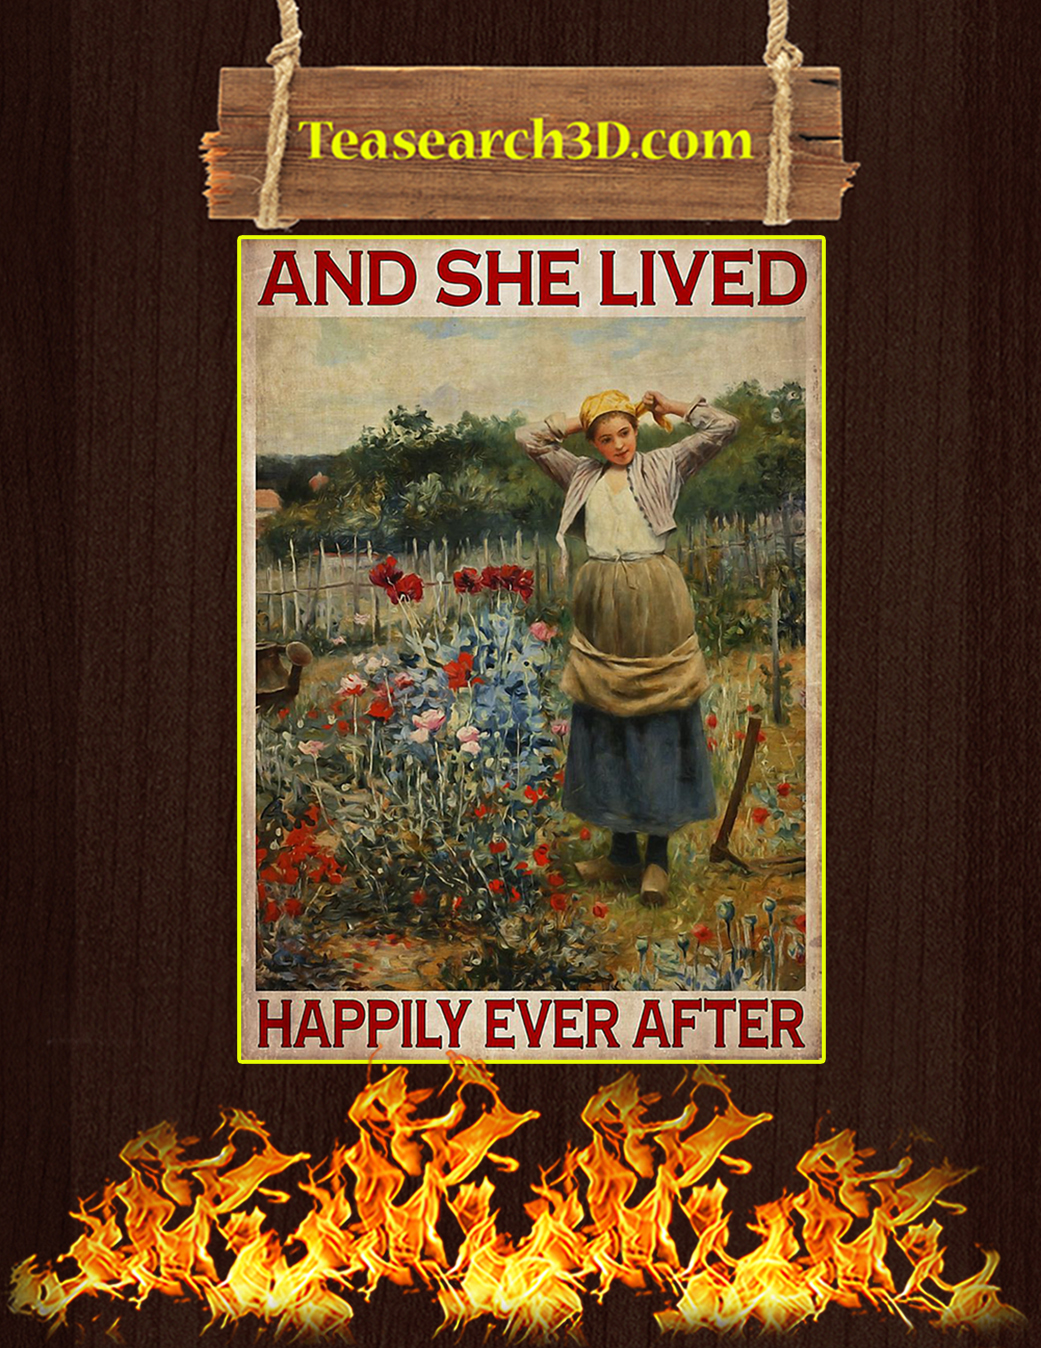 And she lived happily ever after gardening poster A1